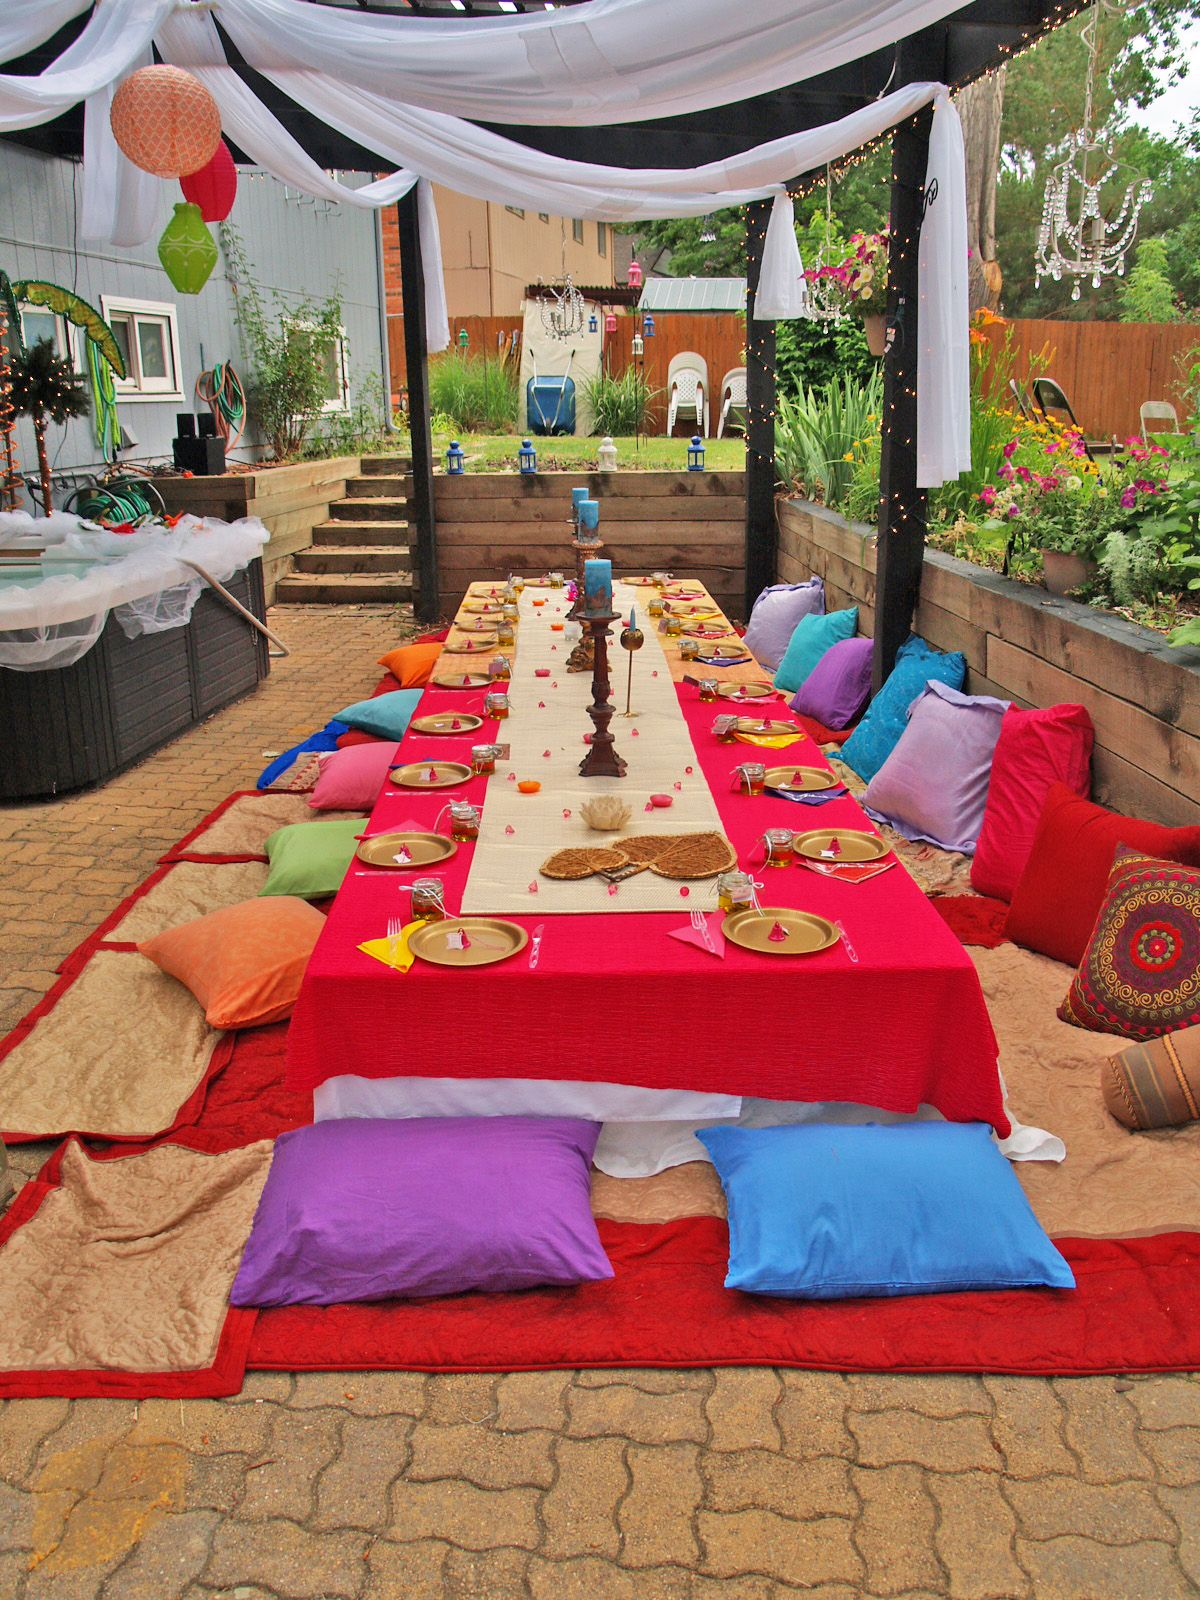 feast your eyes upon this fabulous moroccan themed backyard bridal shower by pop fizz weddings pop fizz weddings are all inclusive celebrations designed